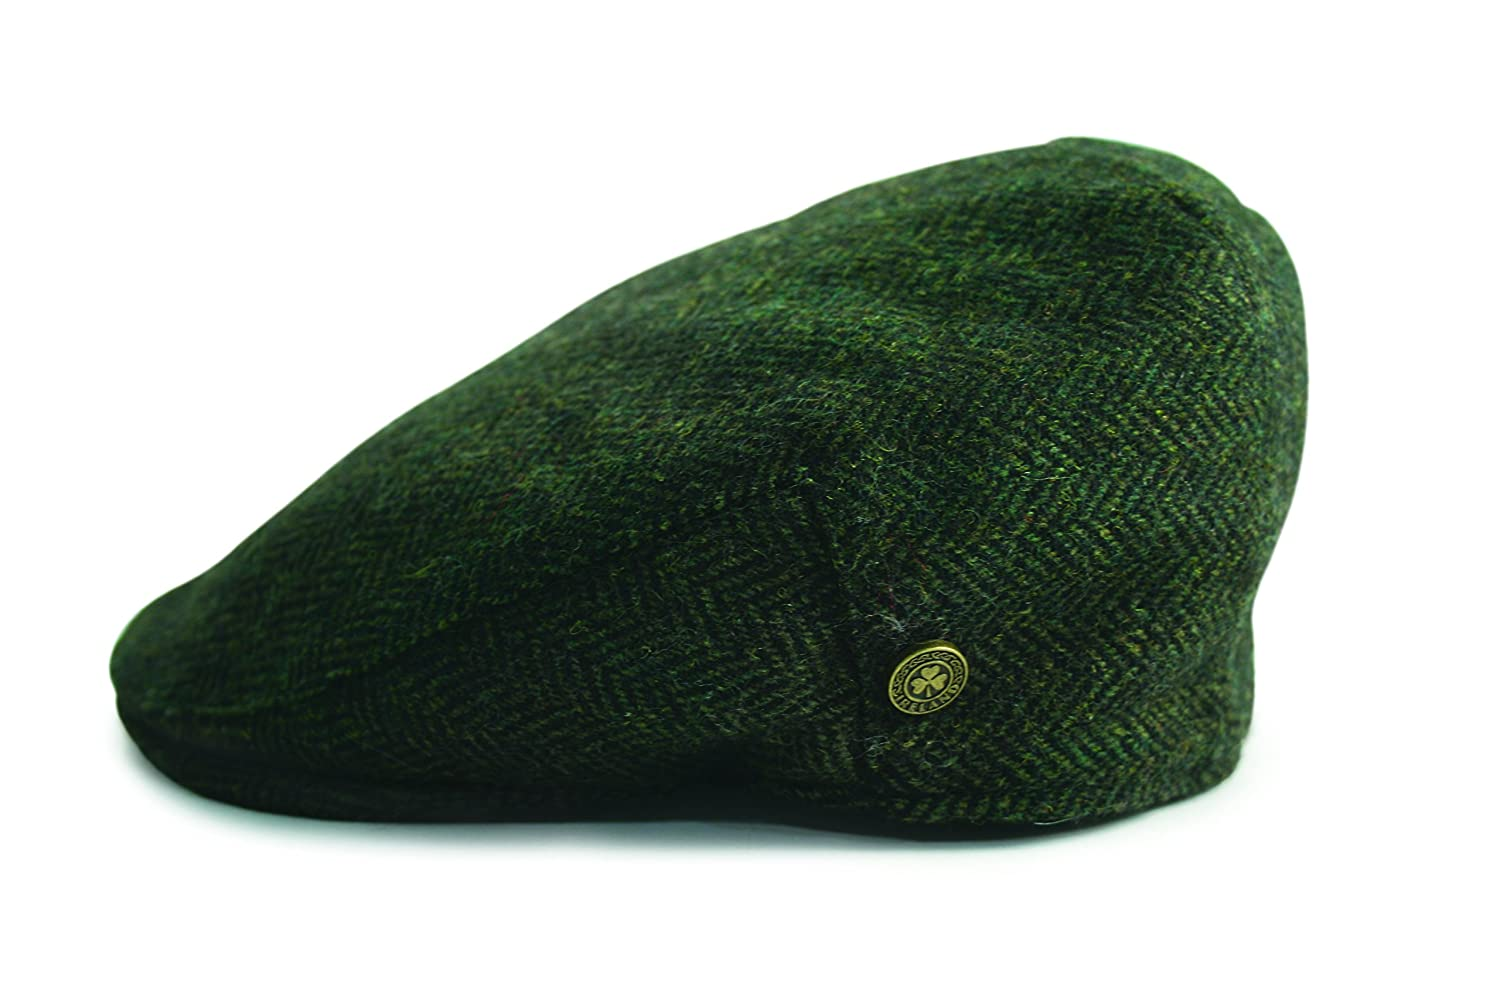 Irish Designed Herringbone Wool Cap With Shamrock Badge, Green Colour Carrolls Irish Gifts